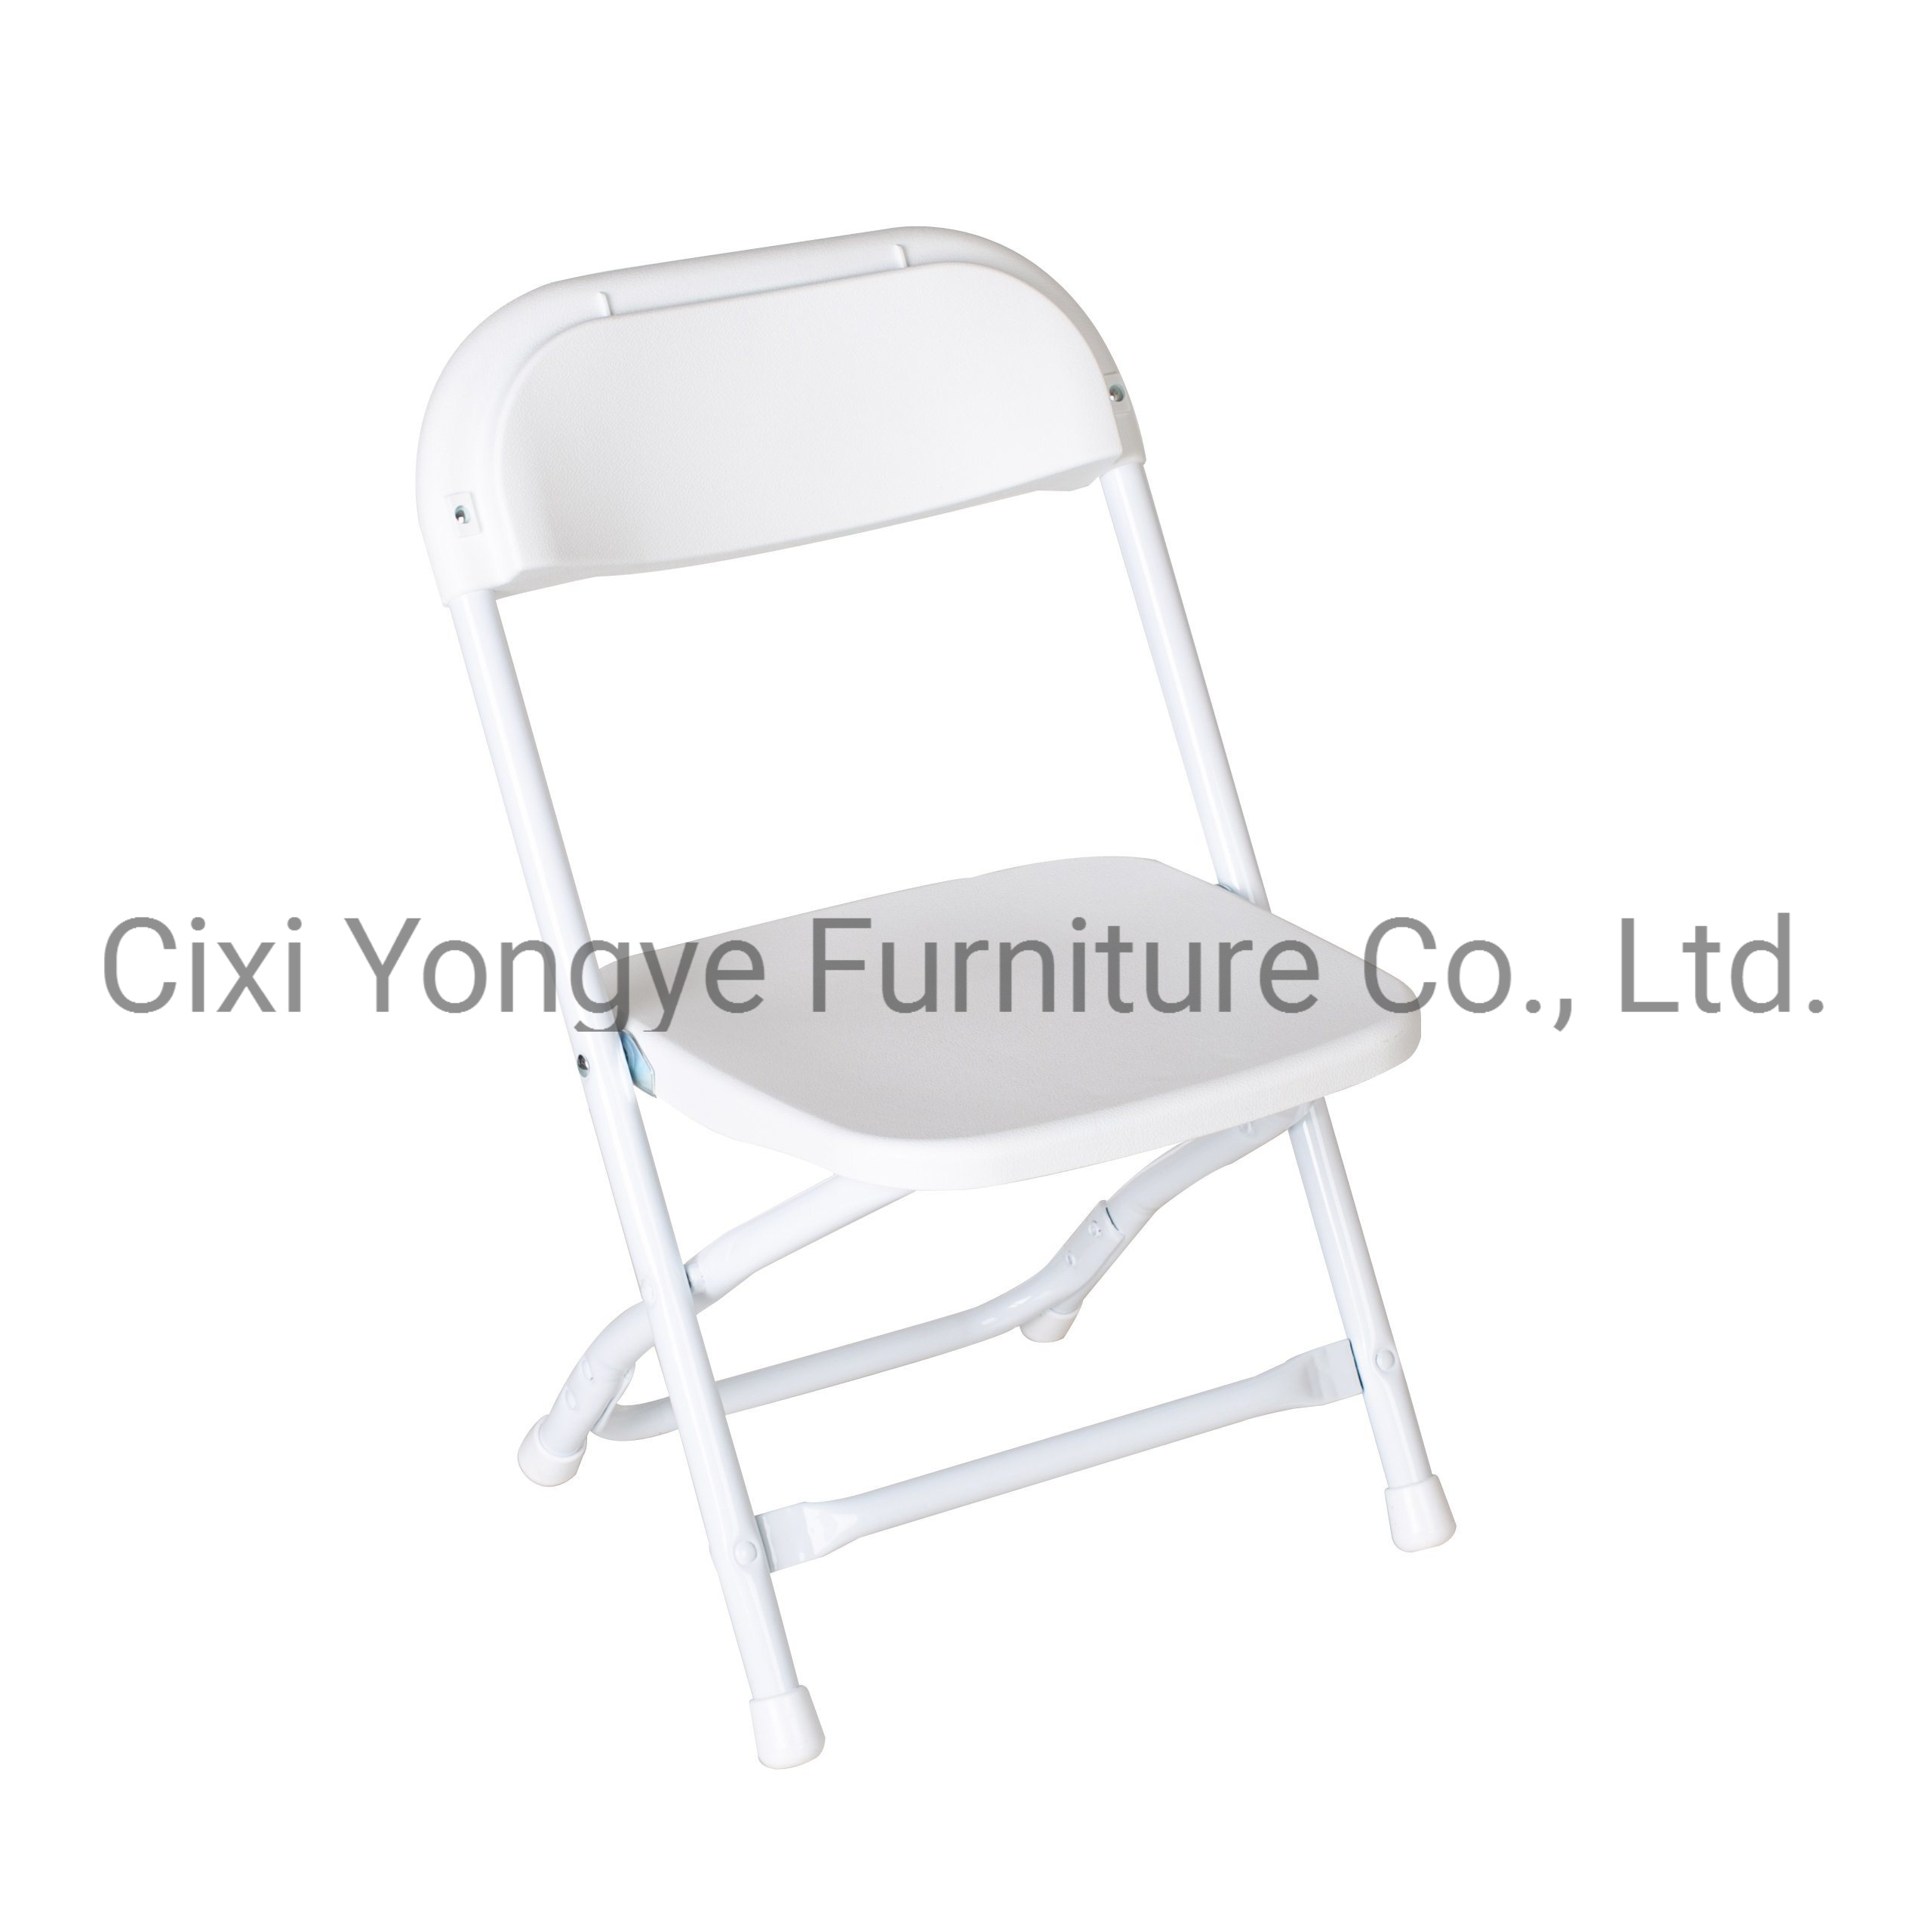 Hot Item Resin Outdoor Dining Furniture Kids Plastic Folding Chair